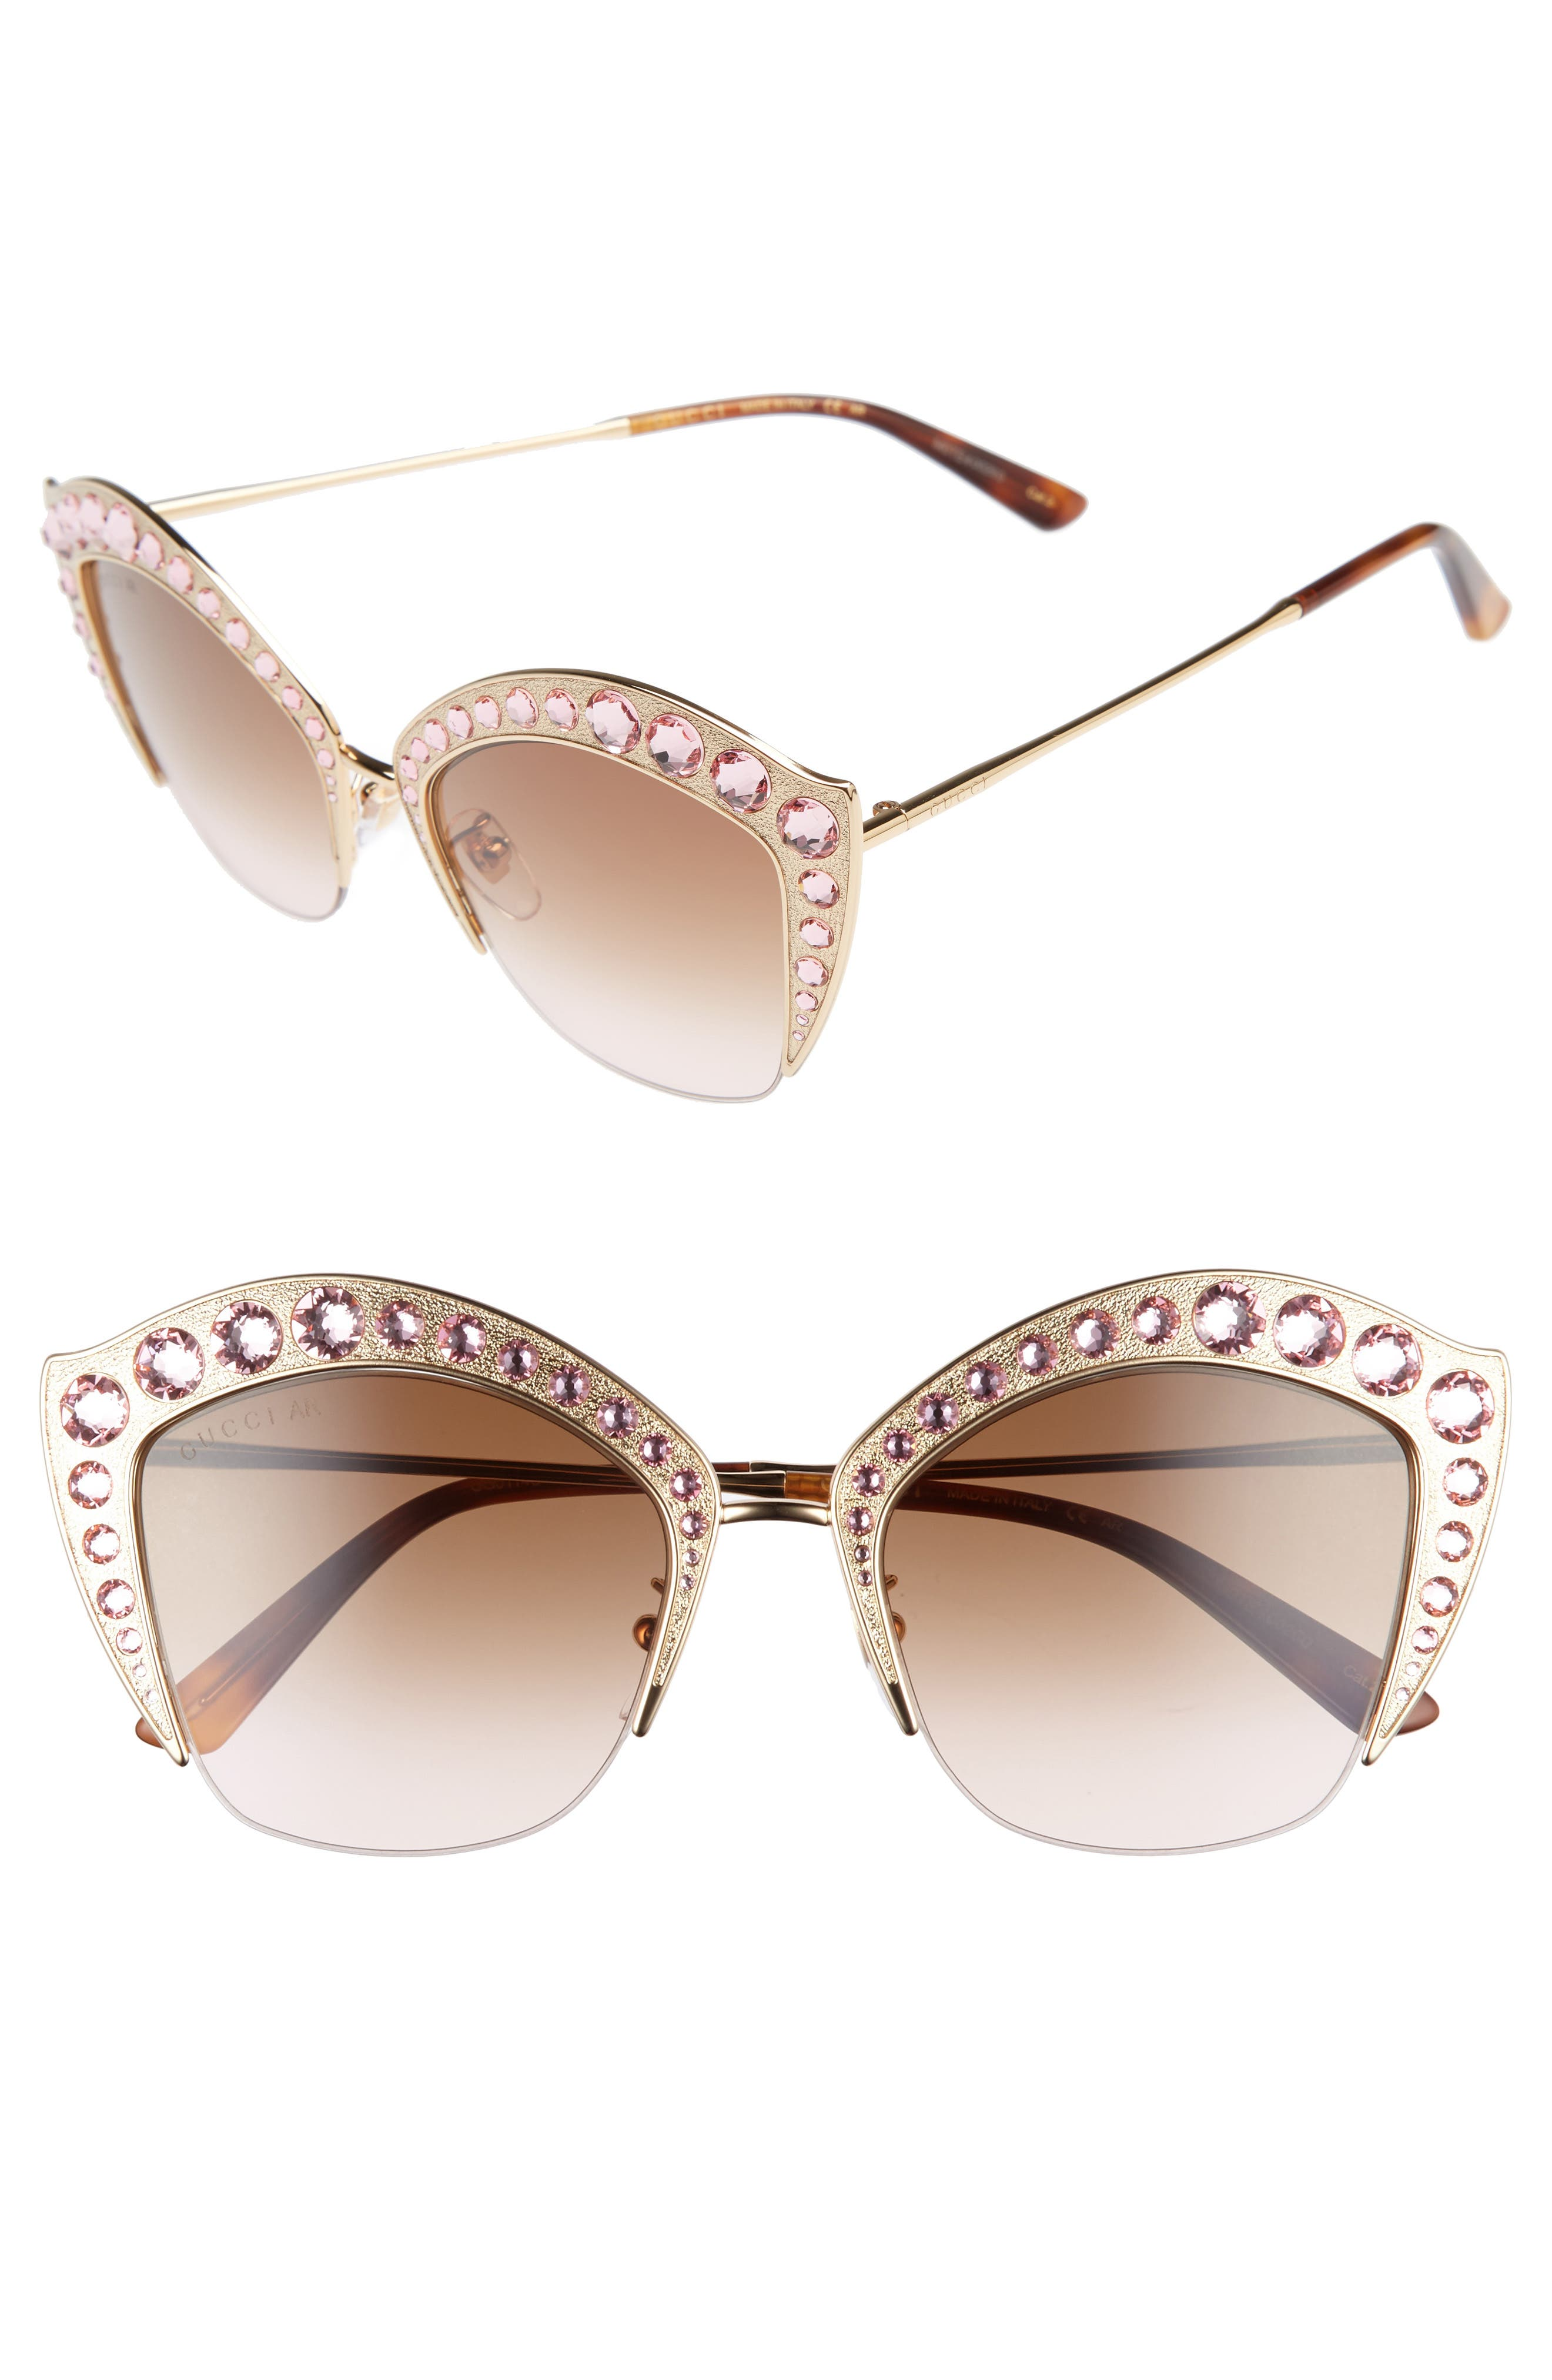 Main Image - Gucci 53mm Embellished Cat Eye Sunglasses